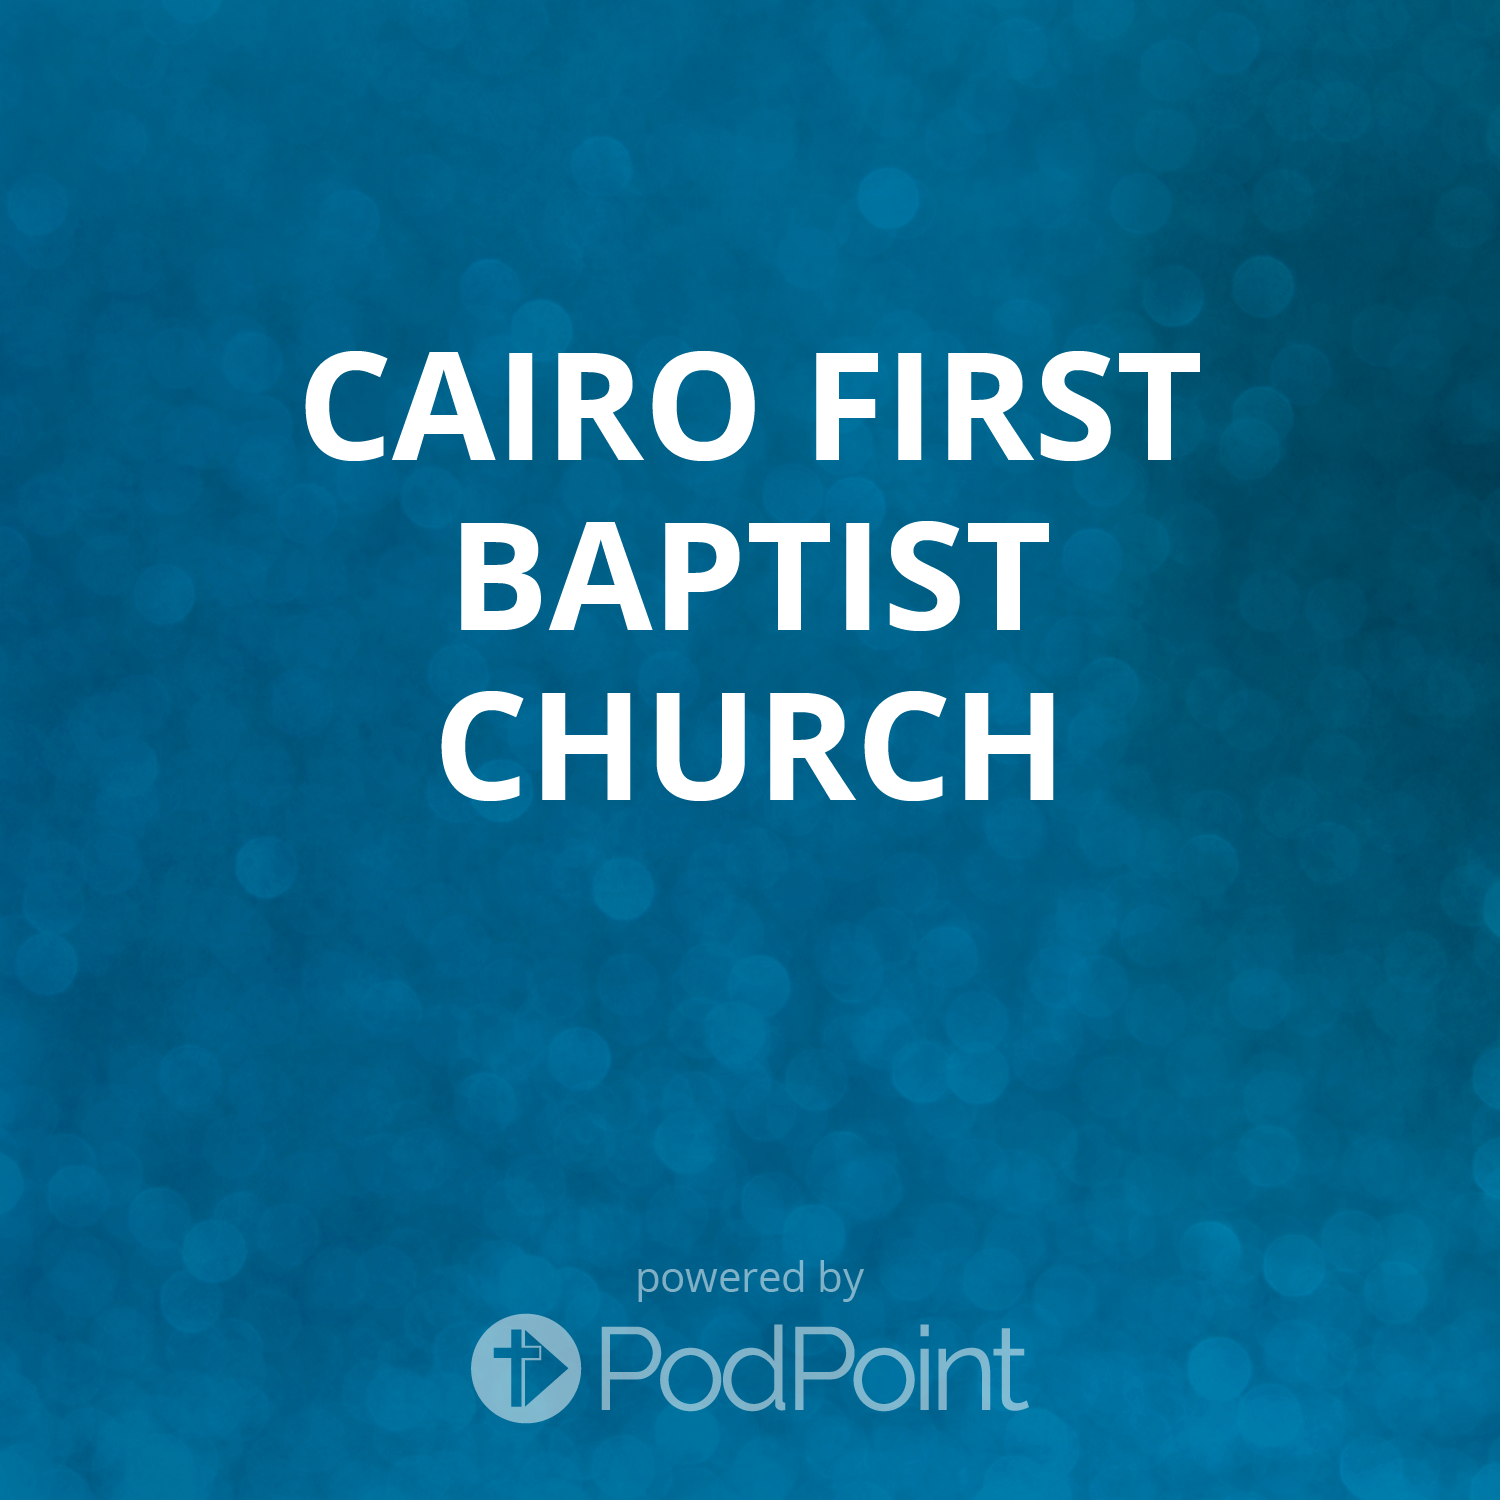 Cairo First Baptist Church